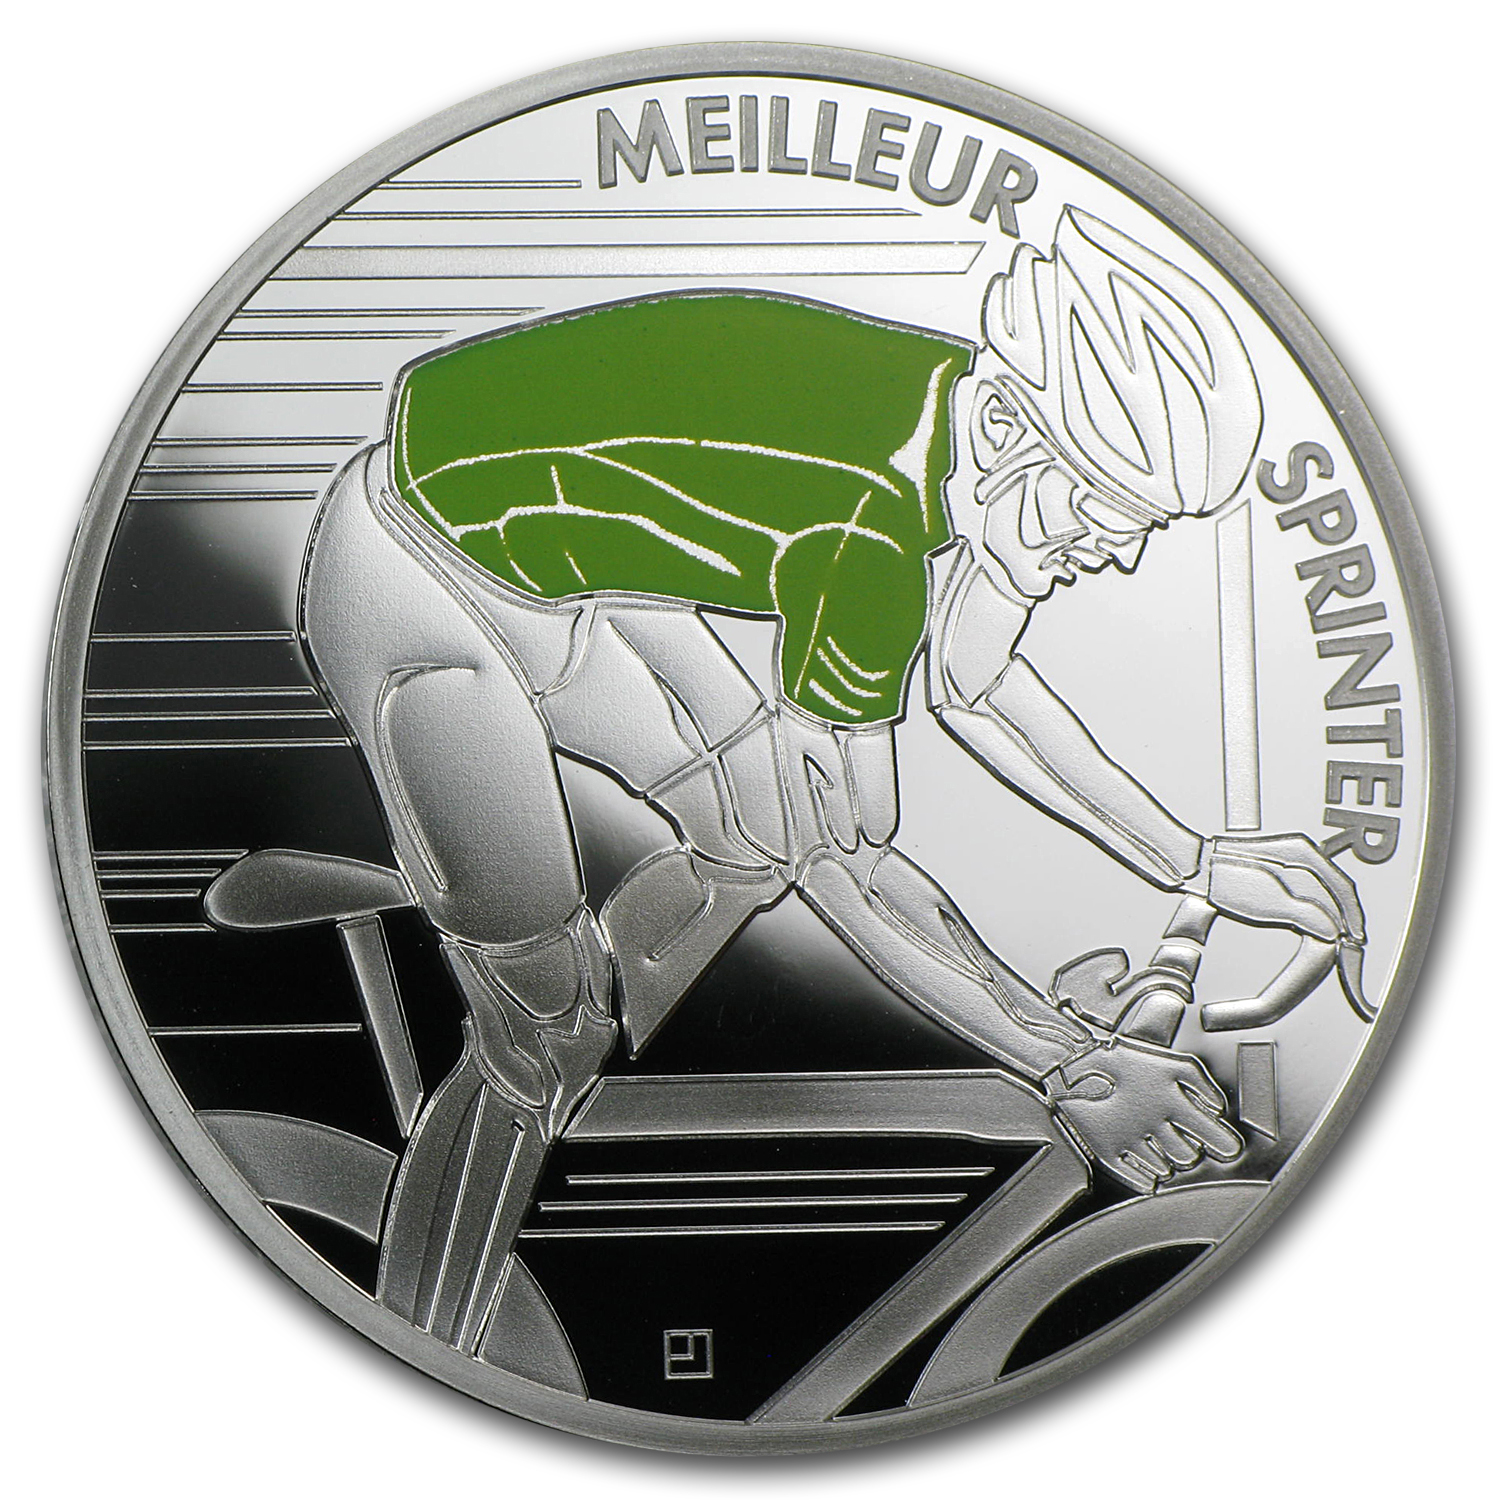 2013 10€ Silver Proof 100th Edition Tour de France - Green Jersey